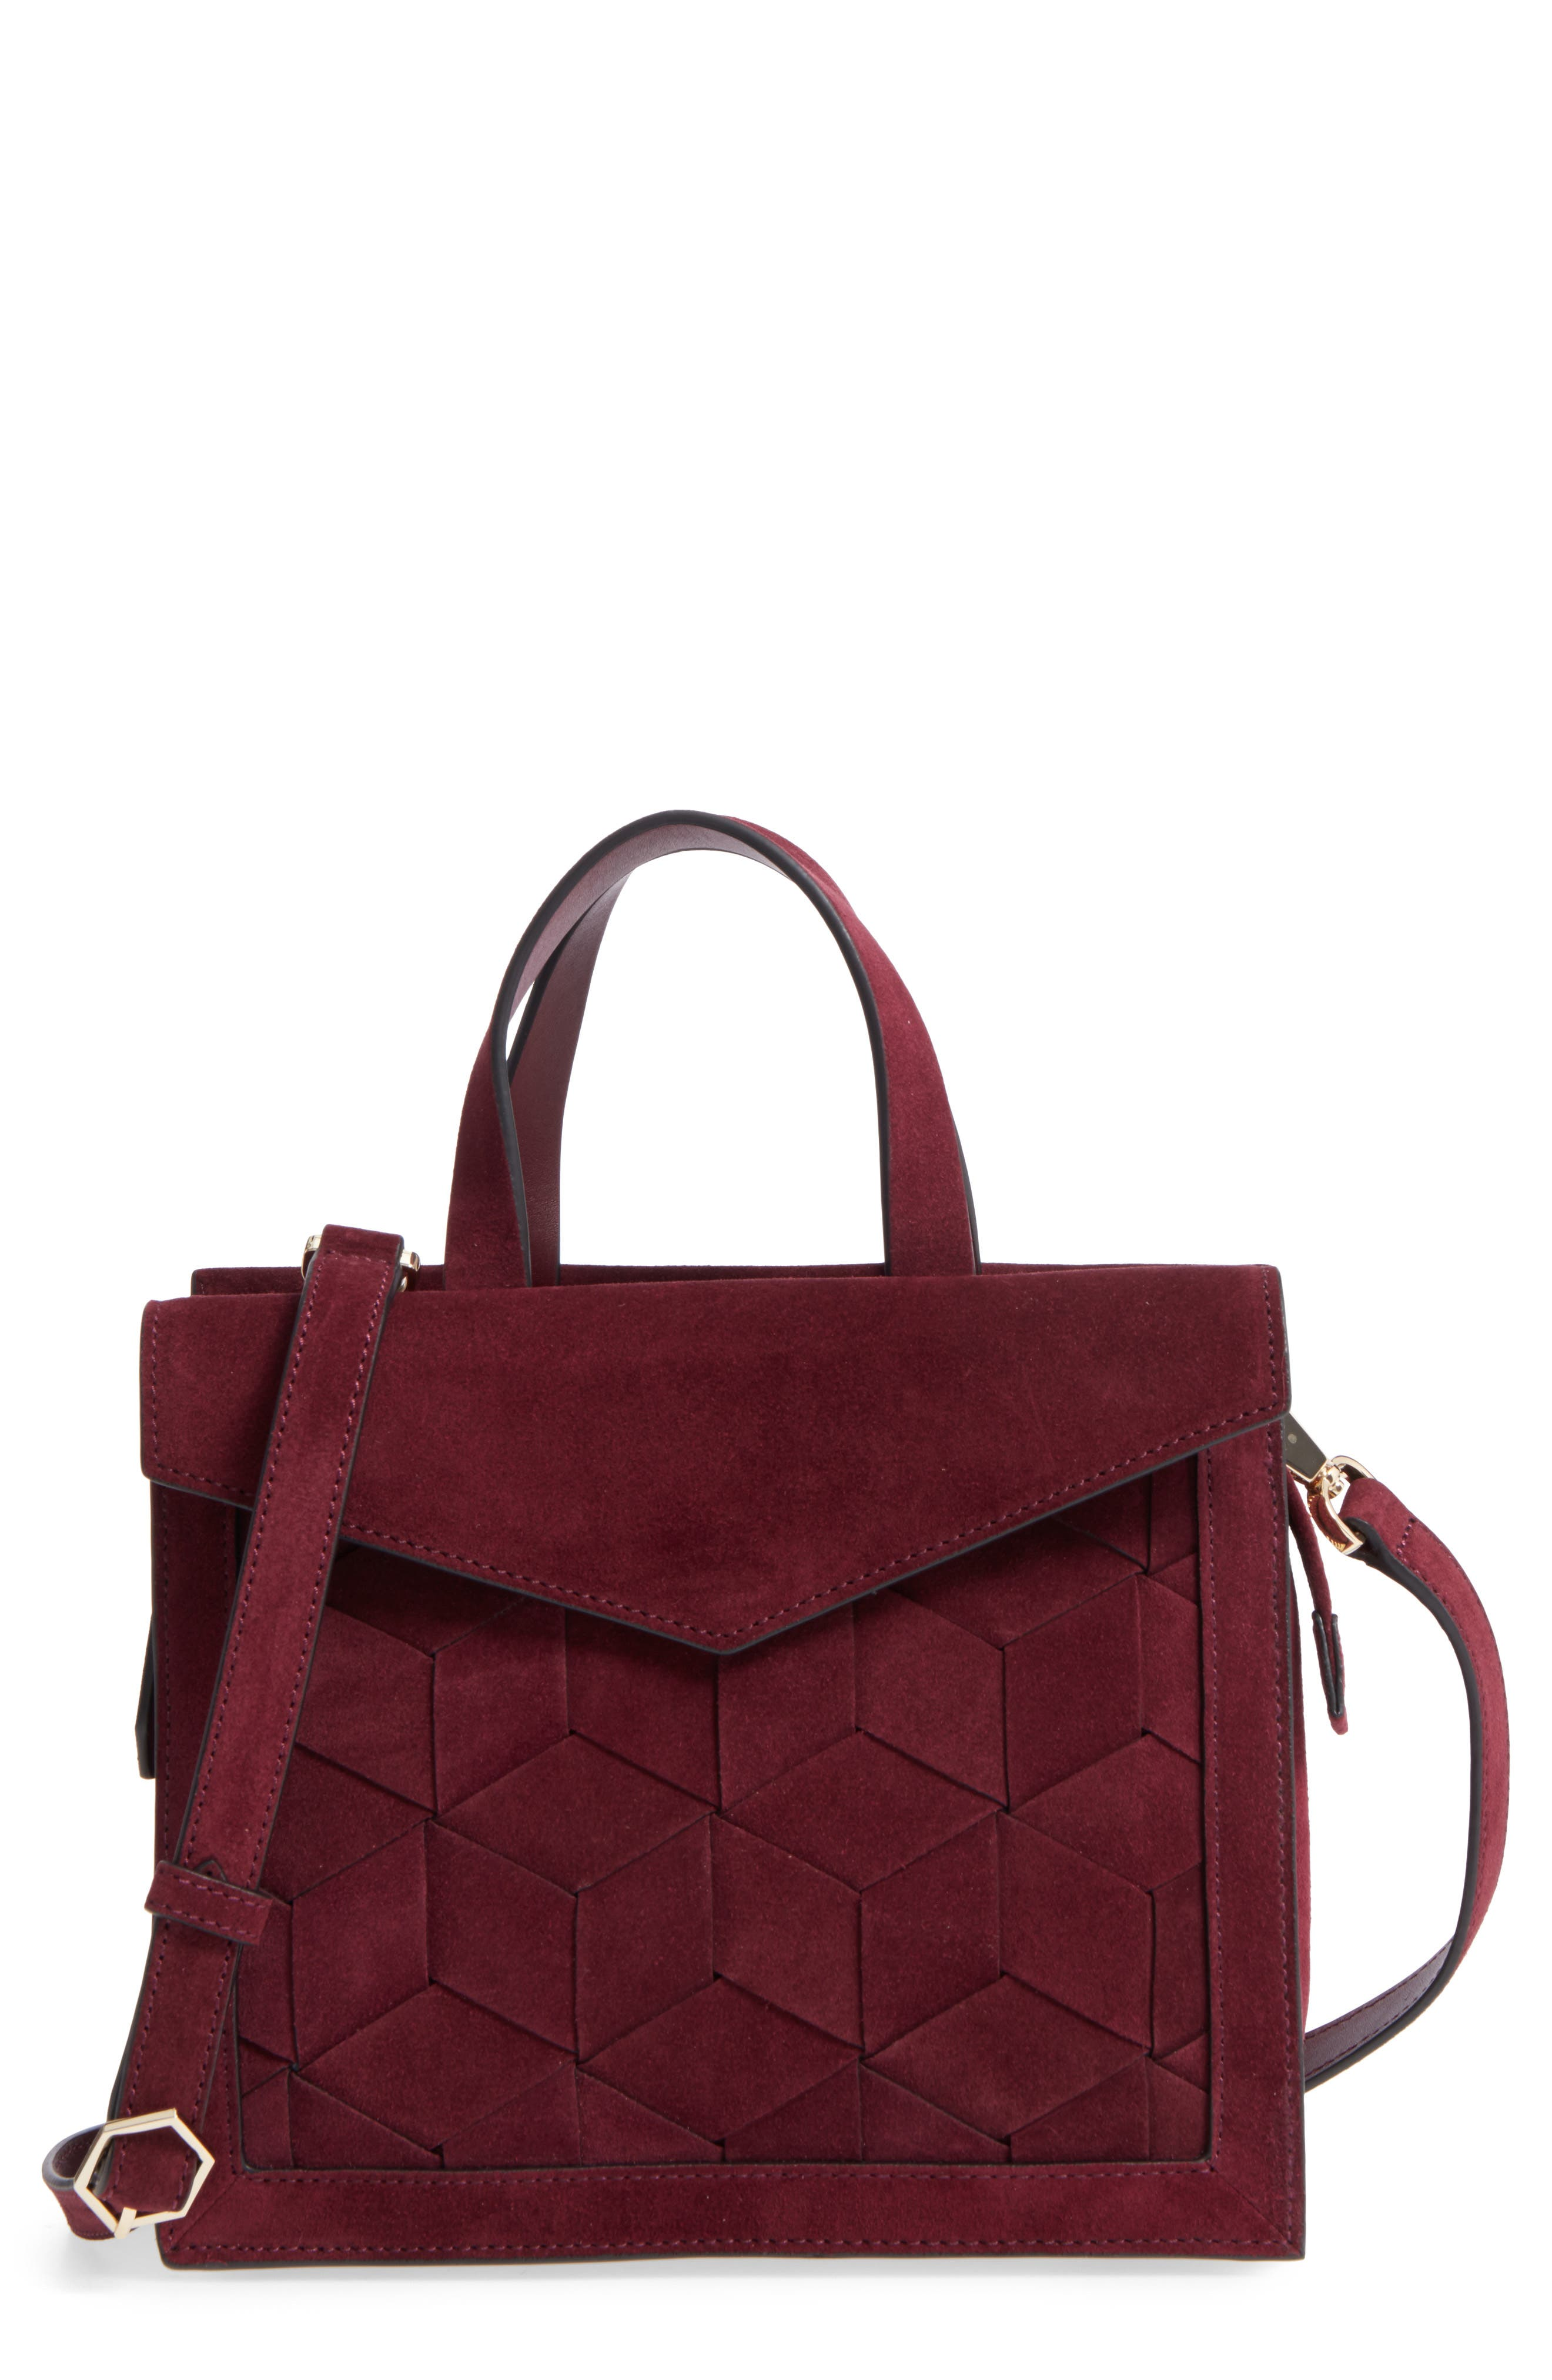 Main Image - WELDEN Small Voyager Leather Convertible Satchel